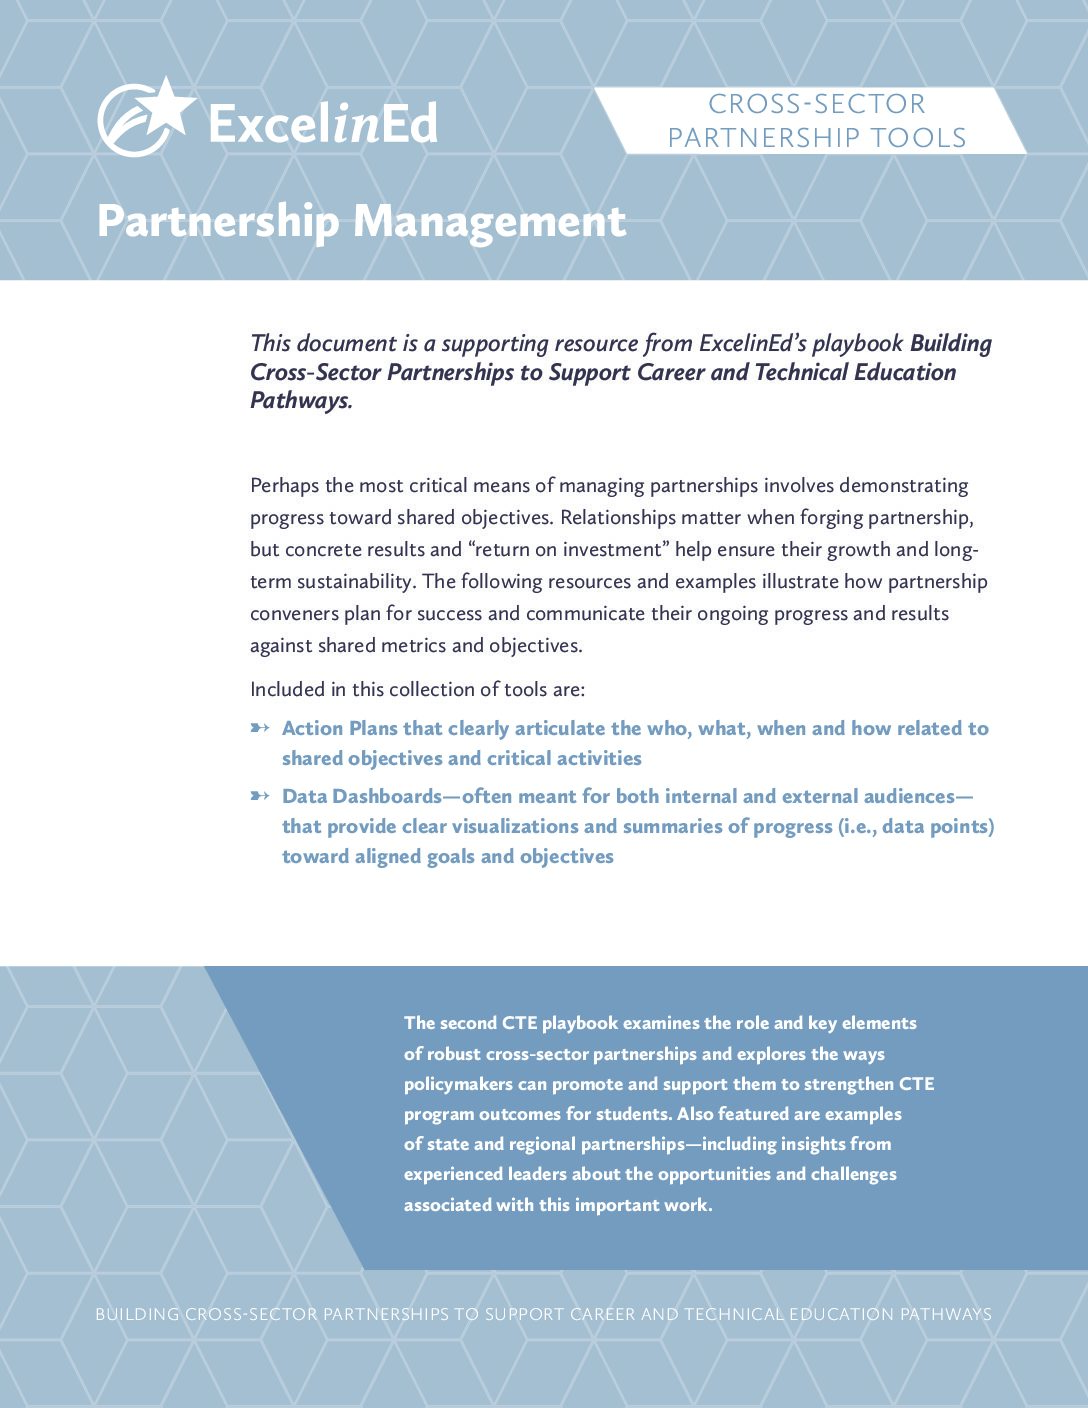 Playbook 2: Cross-Sector Partnership Tools &#8211; Partnership Management &#8211; May 2018>									 									</a> 									<a href=